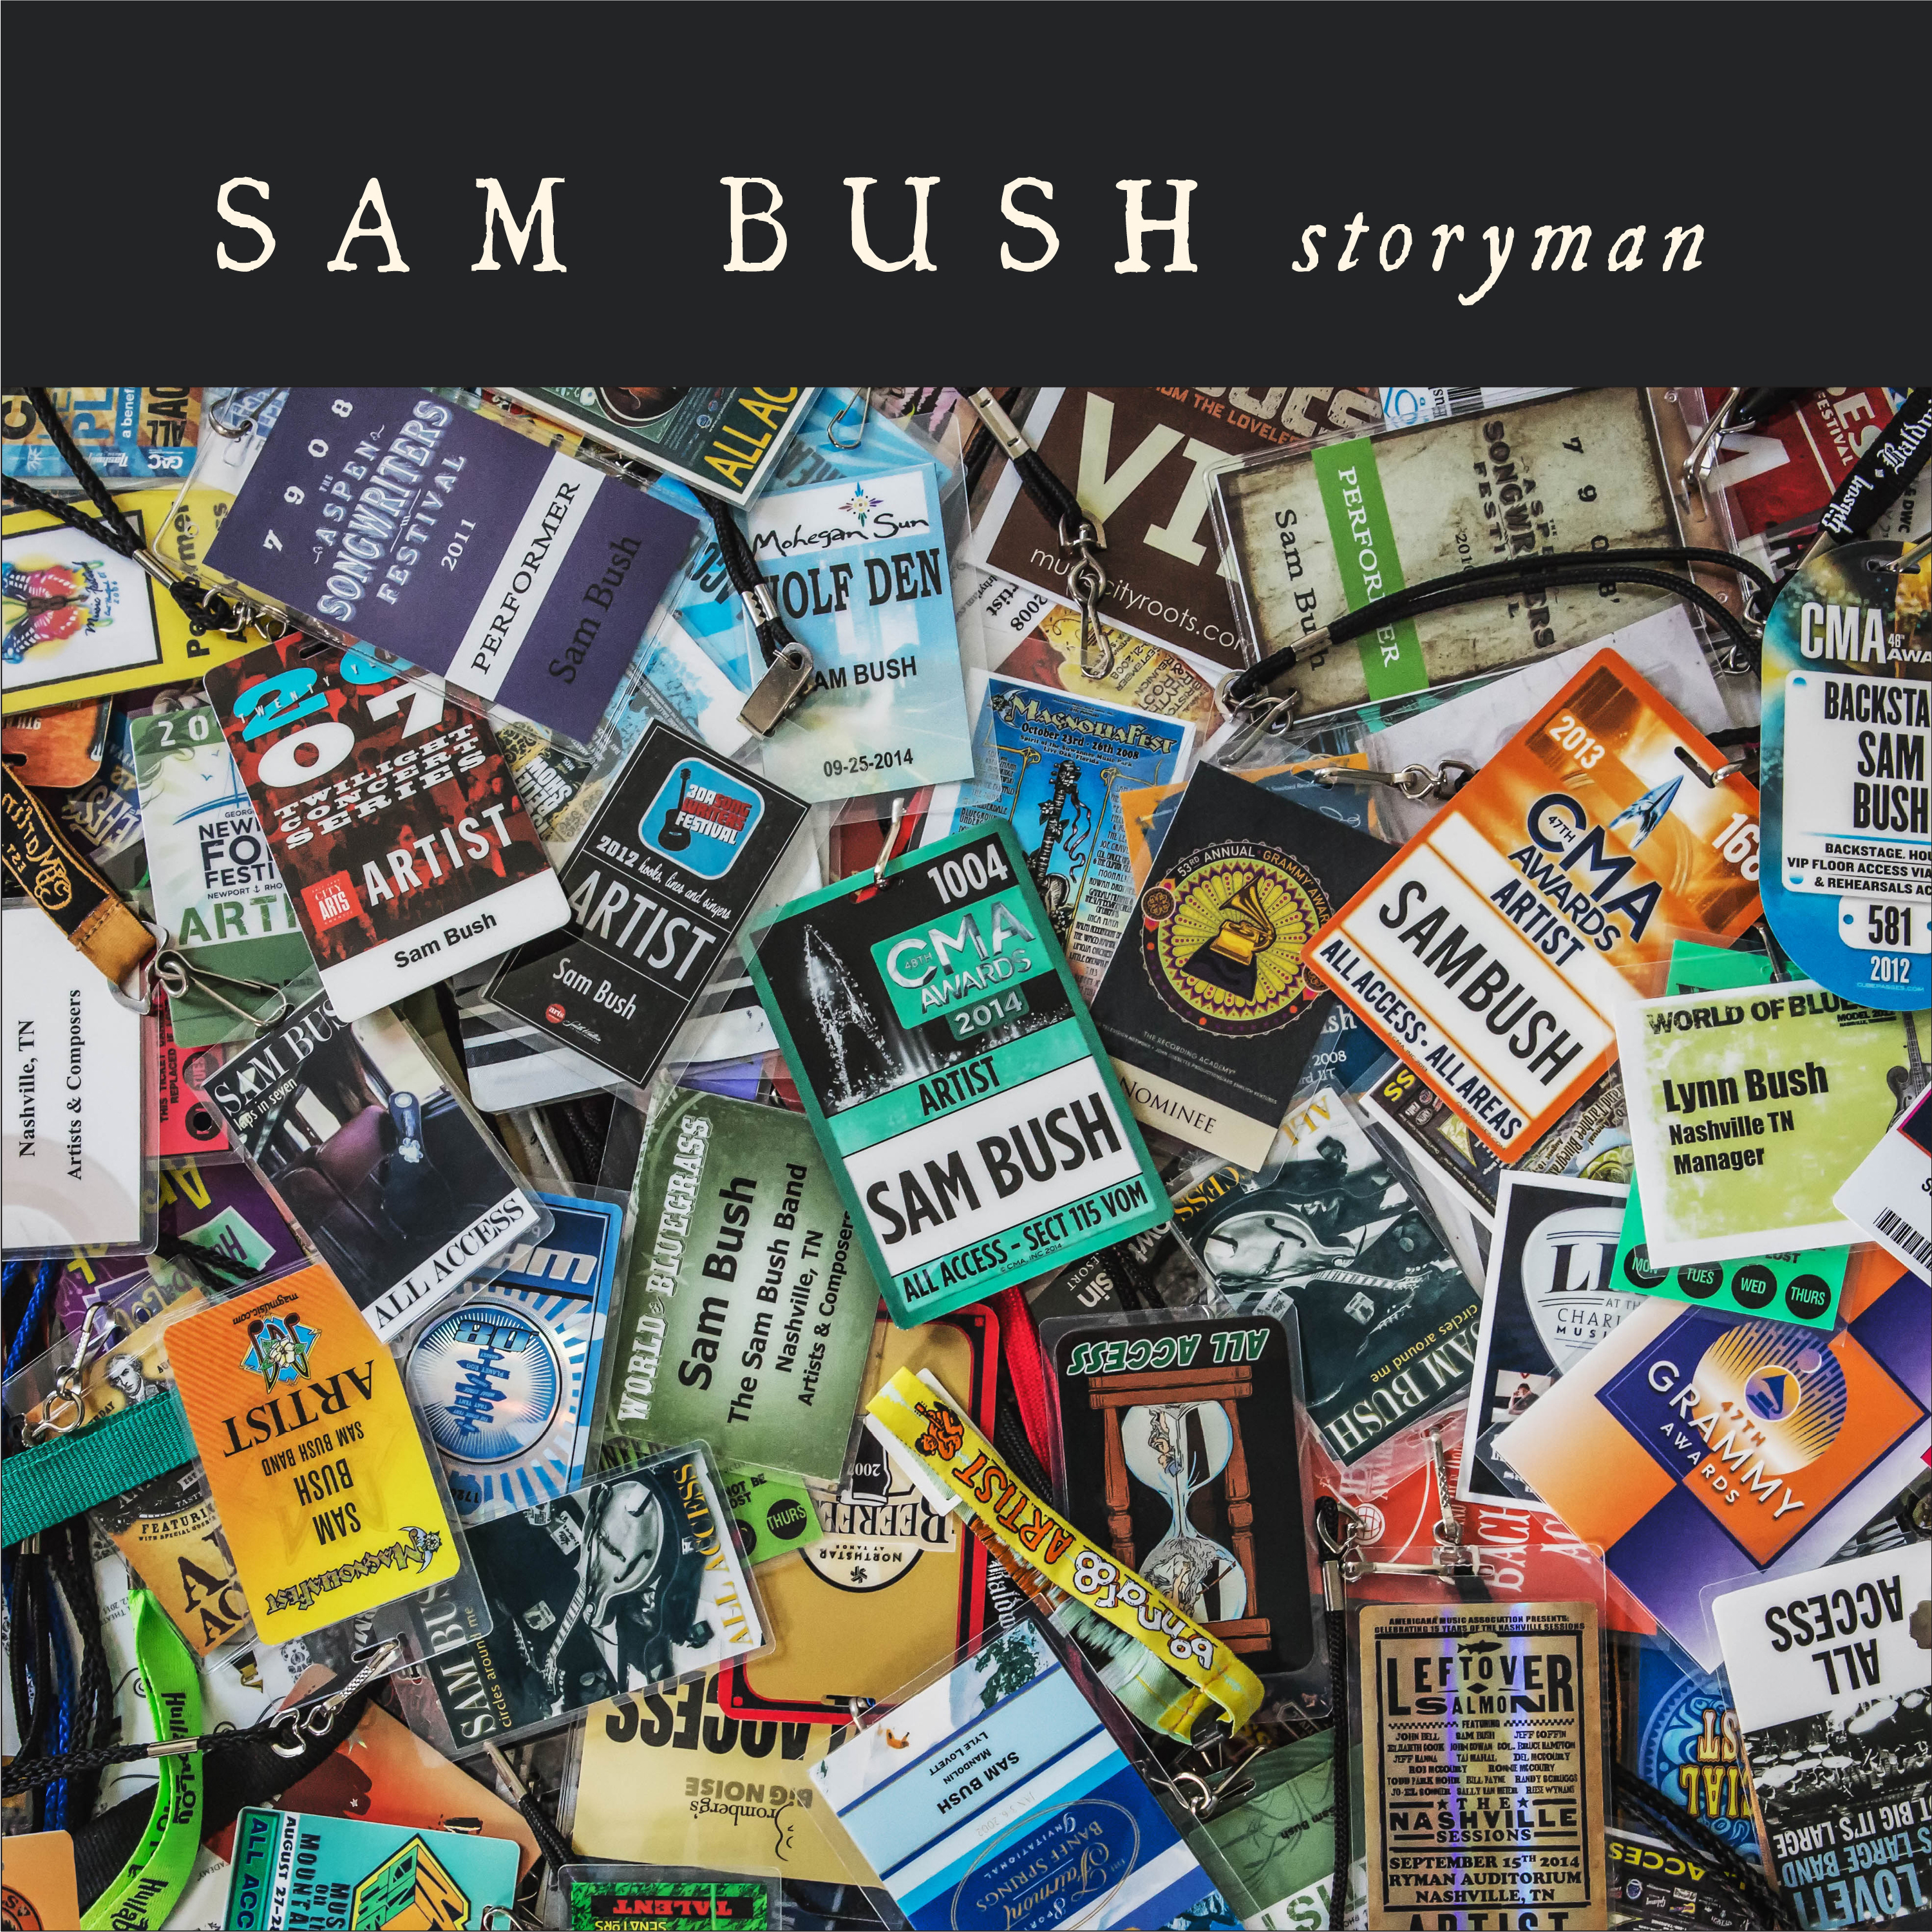 Sam Bush Storyman album artwork. Photo provided.